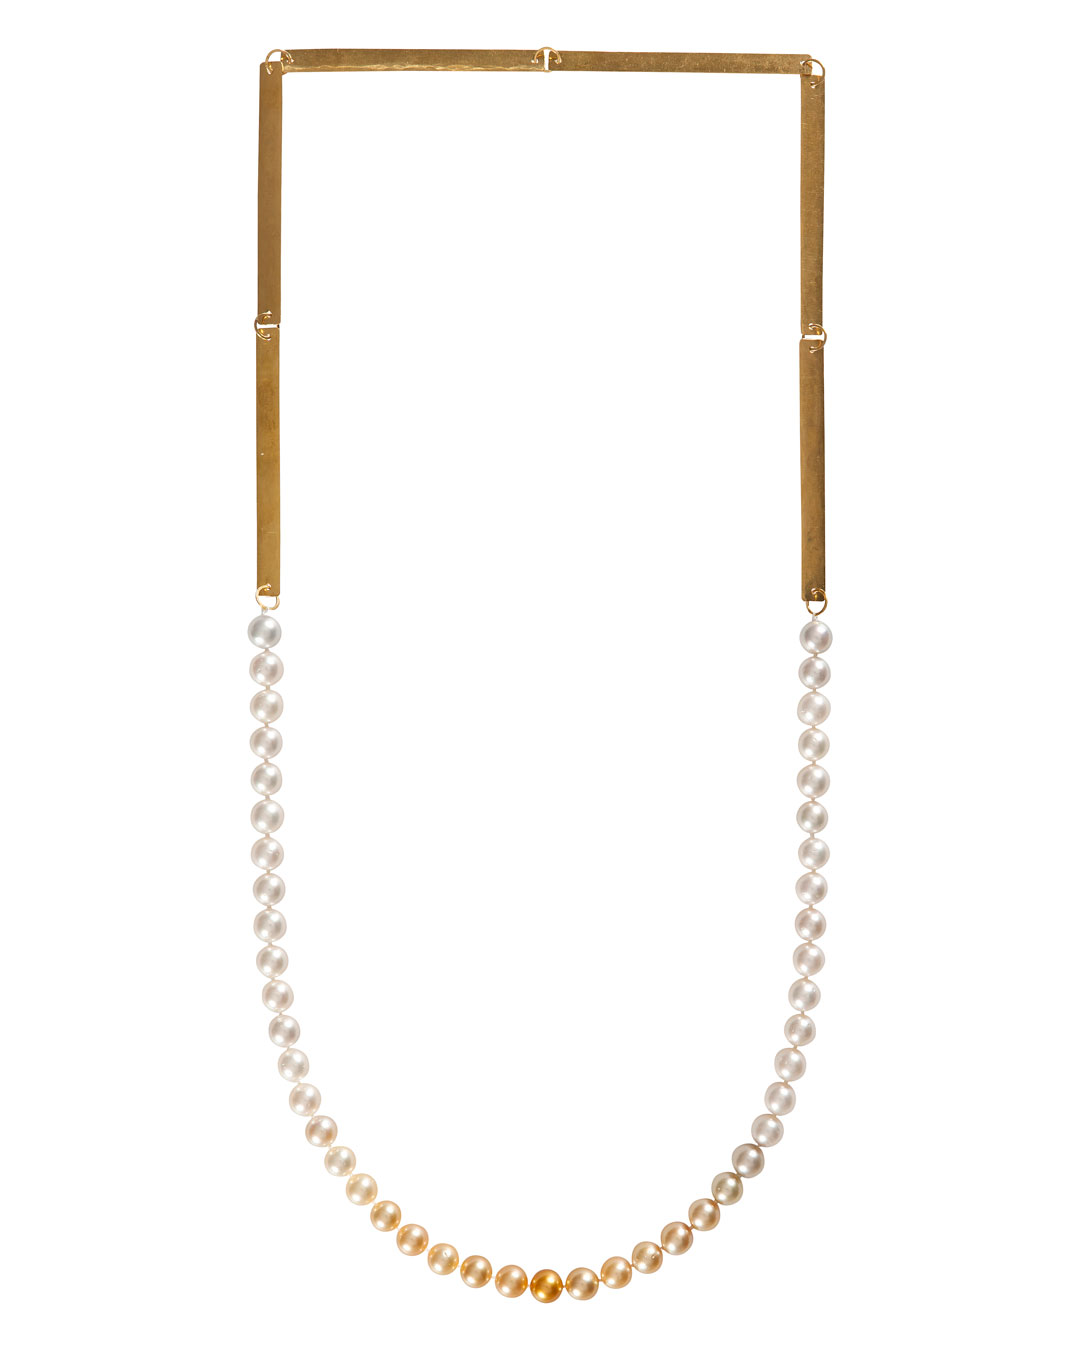 Annelies Planteijdt, Mooie stad – Collier en Chanel no.19 (Beautiful City - Necklace with Chanel no.19), 2017, necklace, gold, South Sea pearls, 150 x 360 mm, price on request (image 1/3)